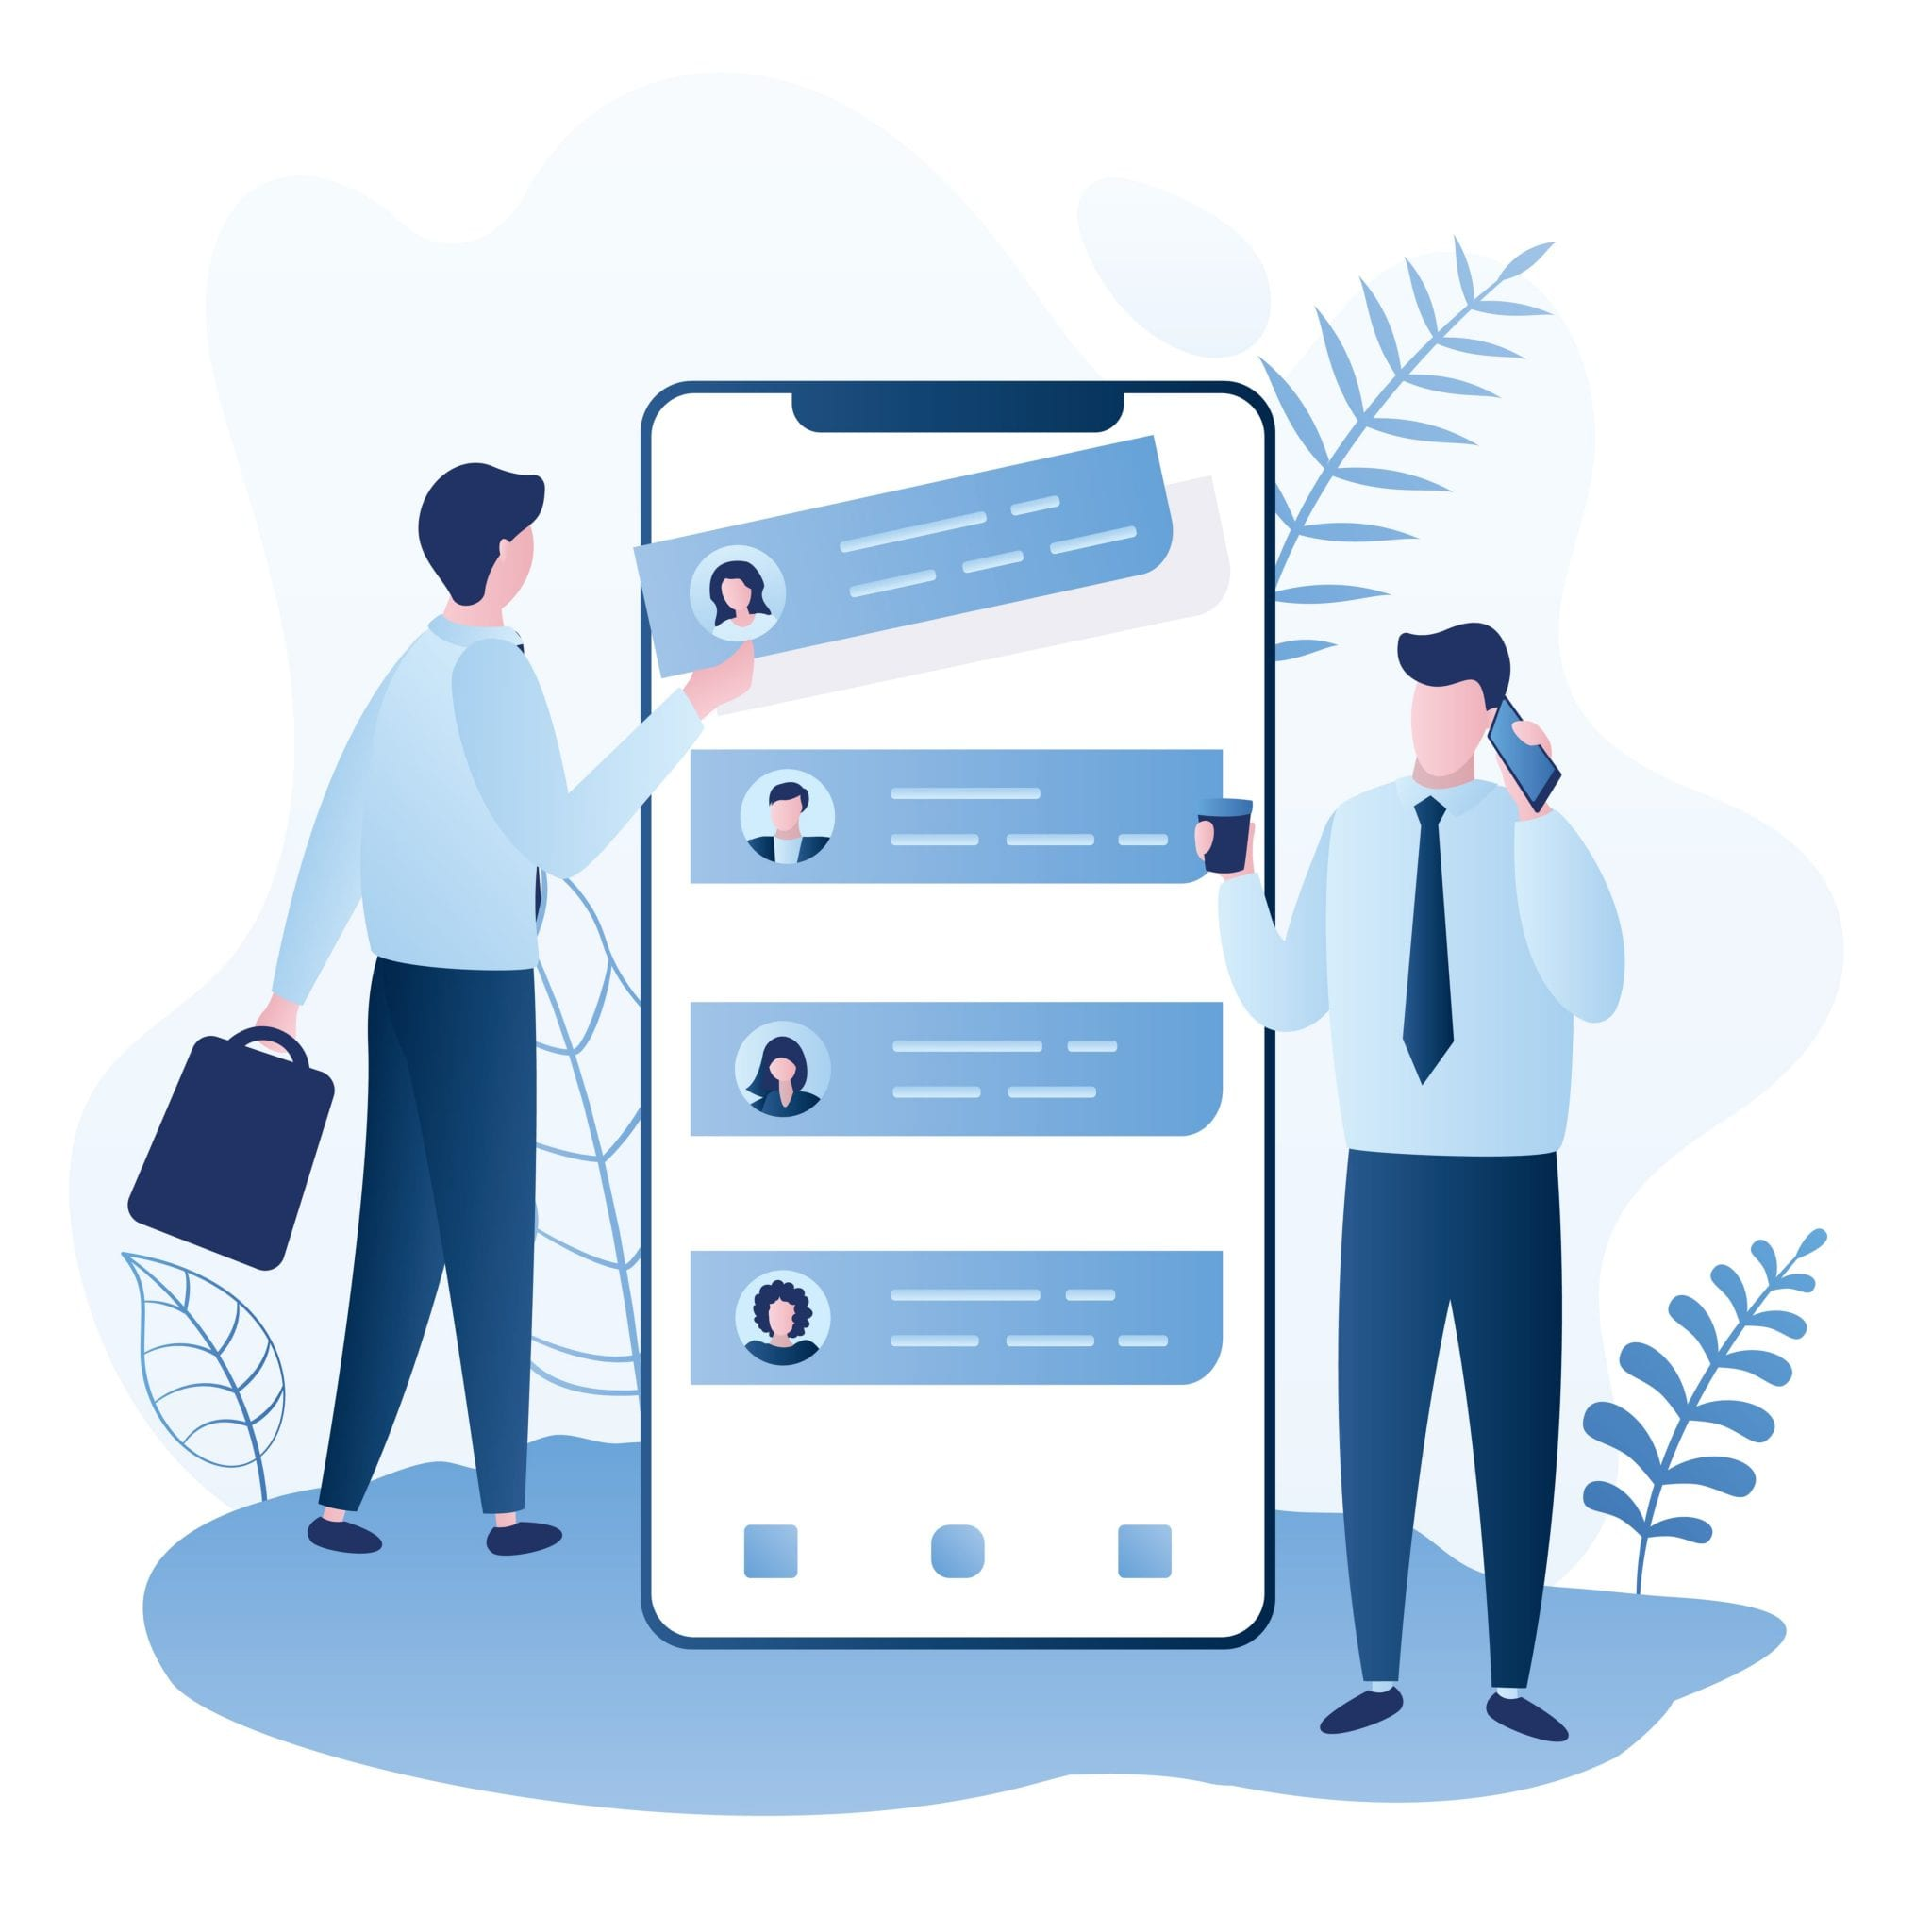 Two Businessmen and Big Smartphone With Application, Team Building and Hiring- Concept Background, Trendy Style Vector Illustration.